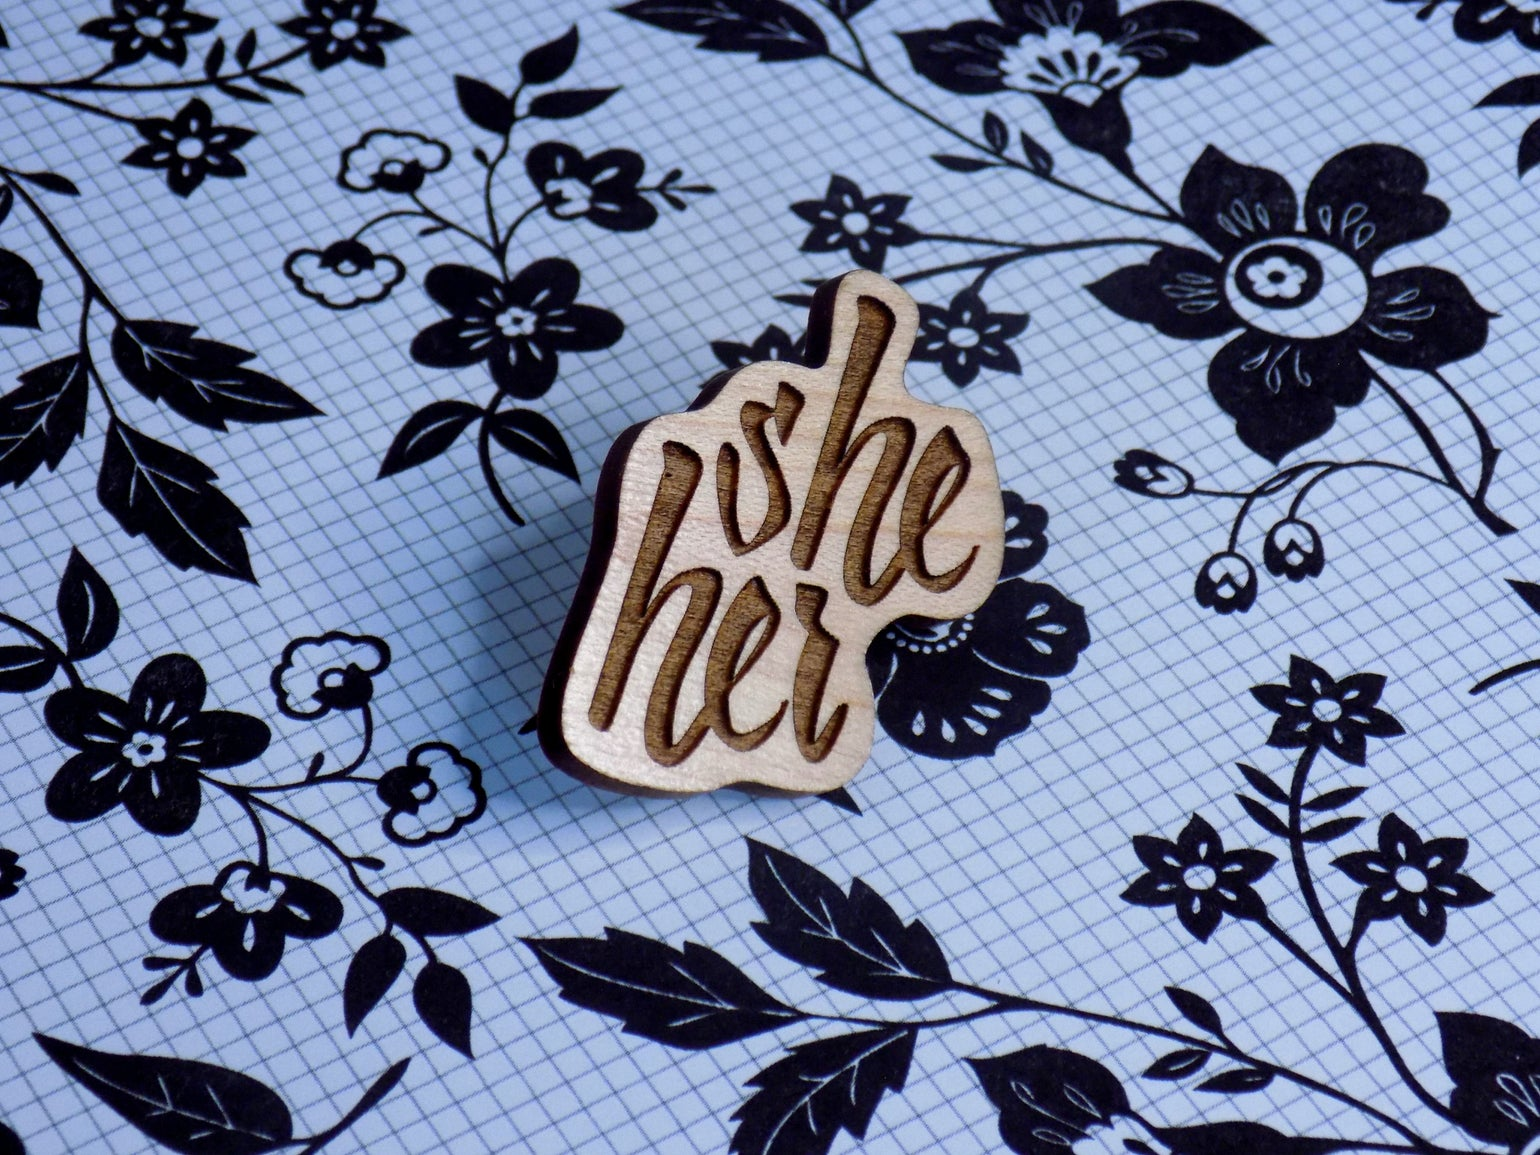 Image of Maple Hardwood Pronoun Pin - She/Her